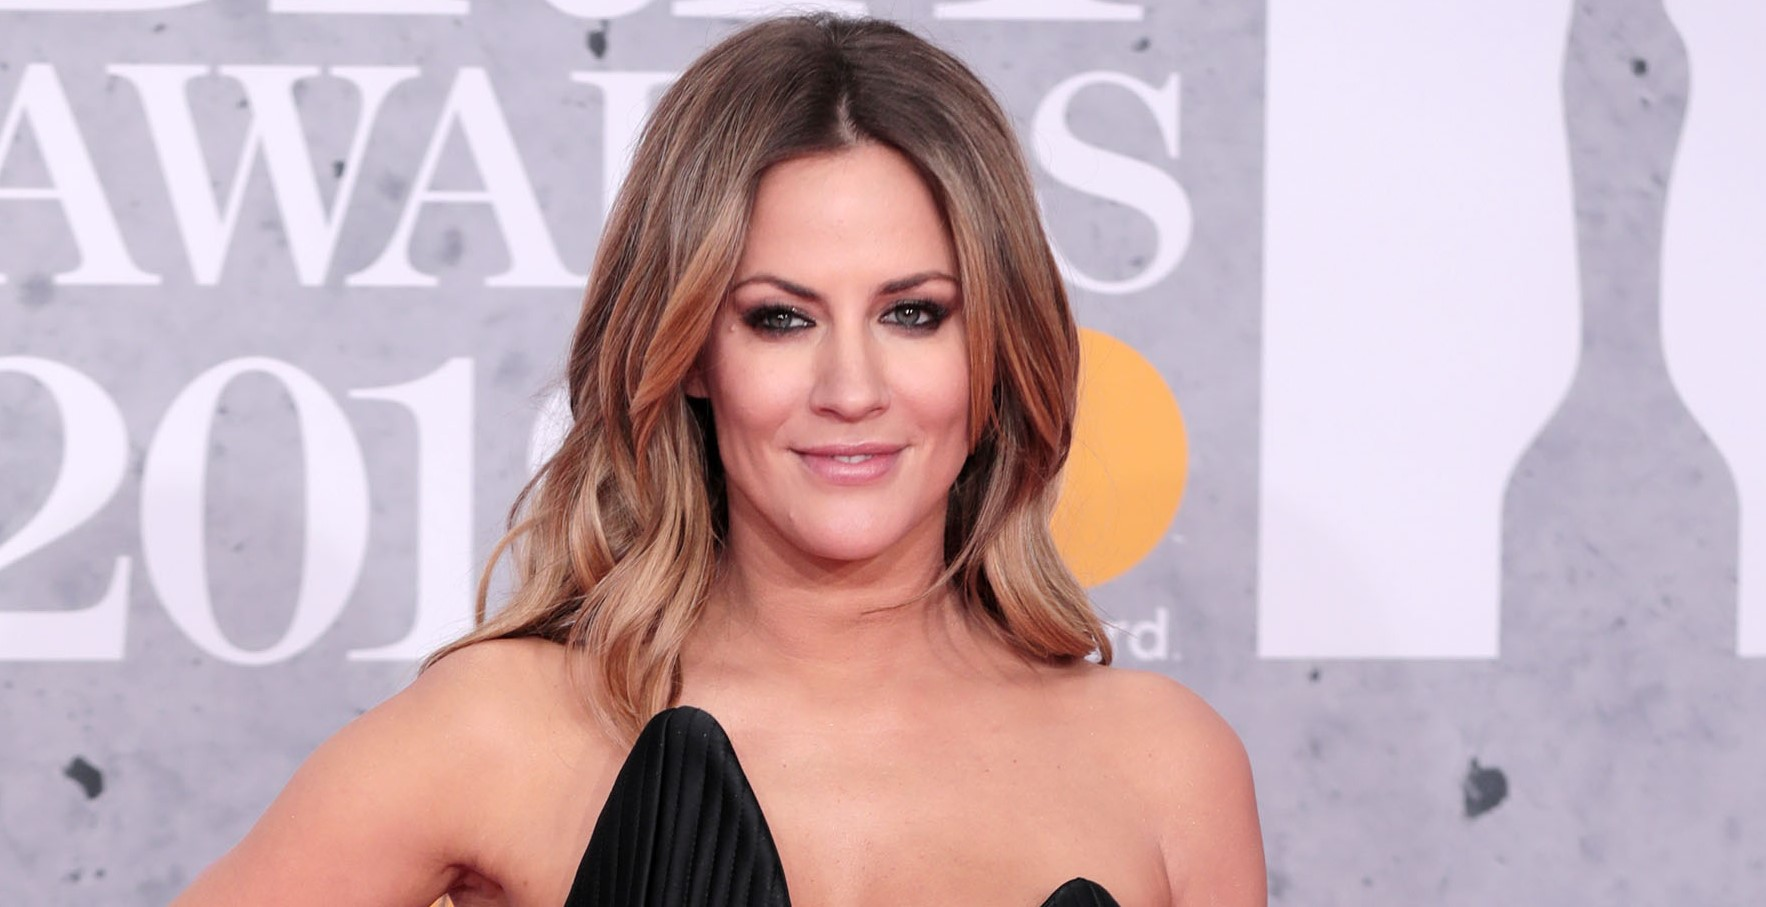 Caroline Flack told ex Danny Cipriani she 'had to plead guilty' in final text to him